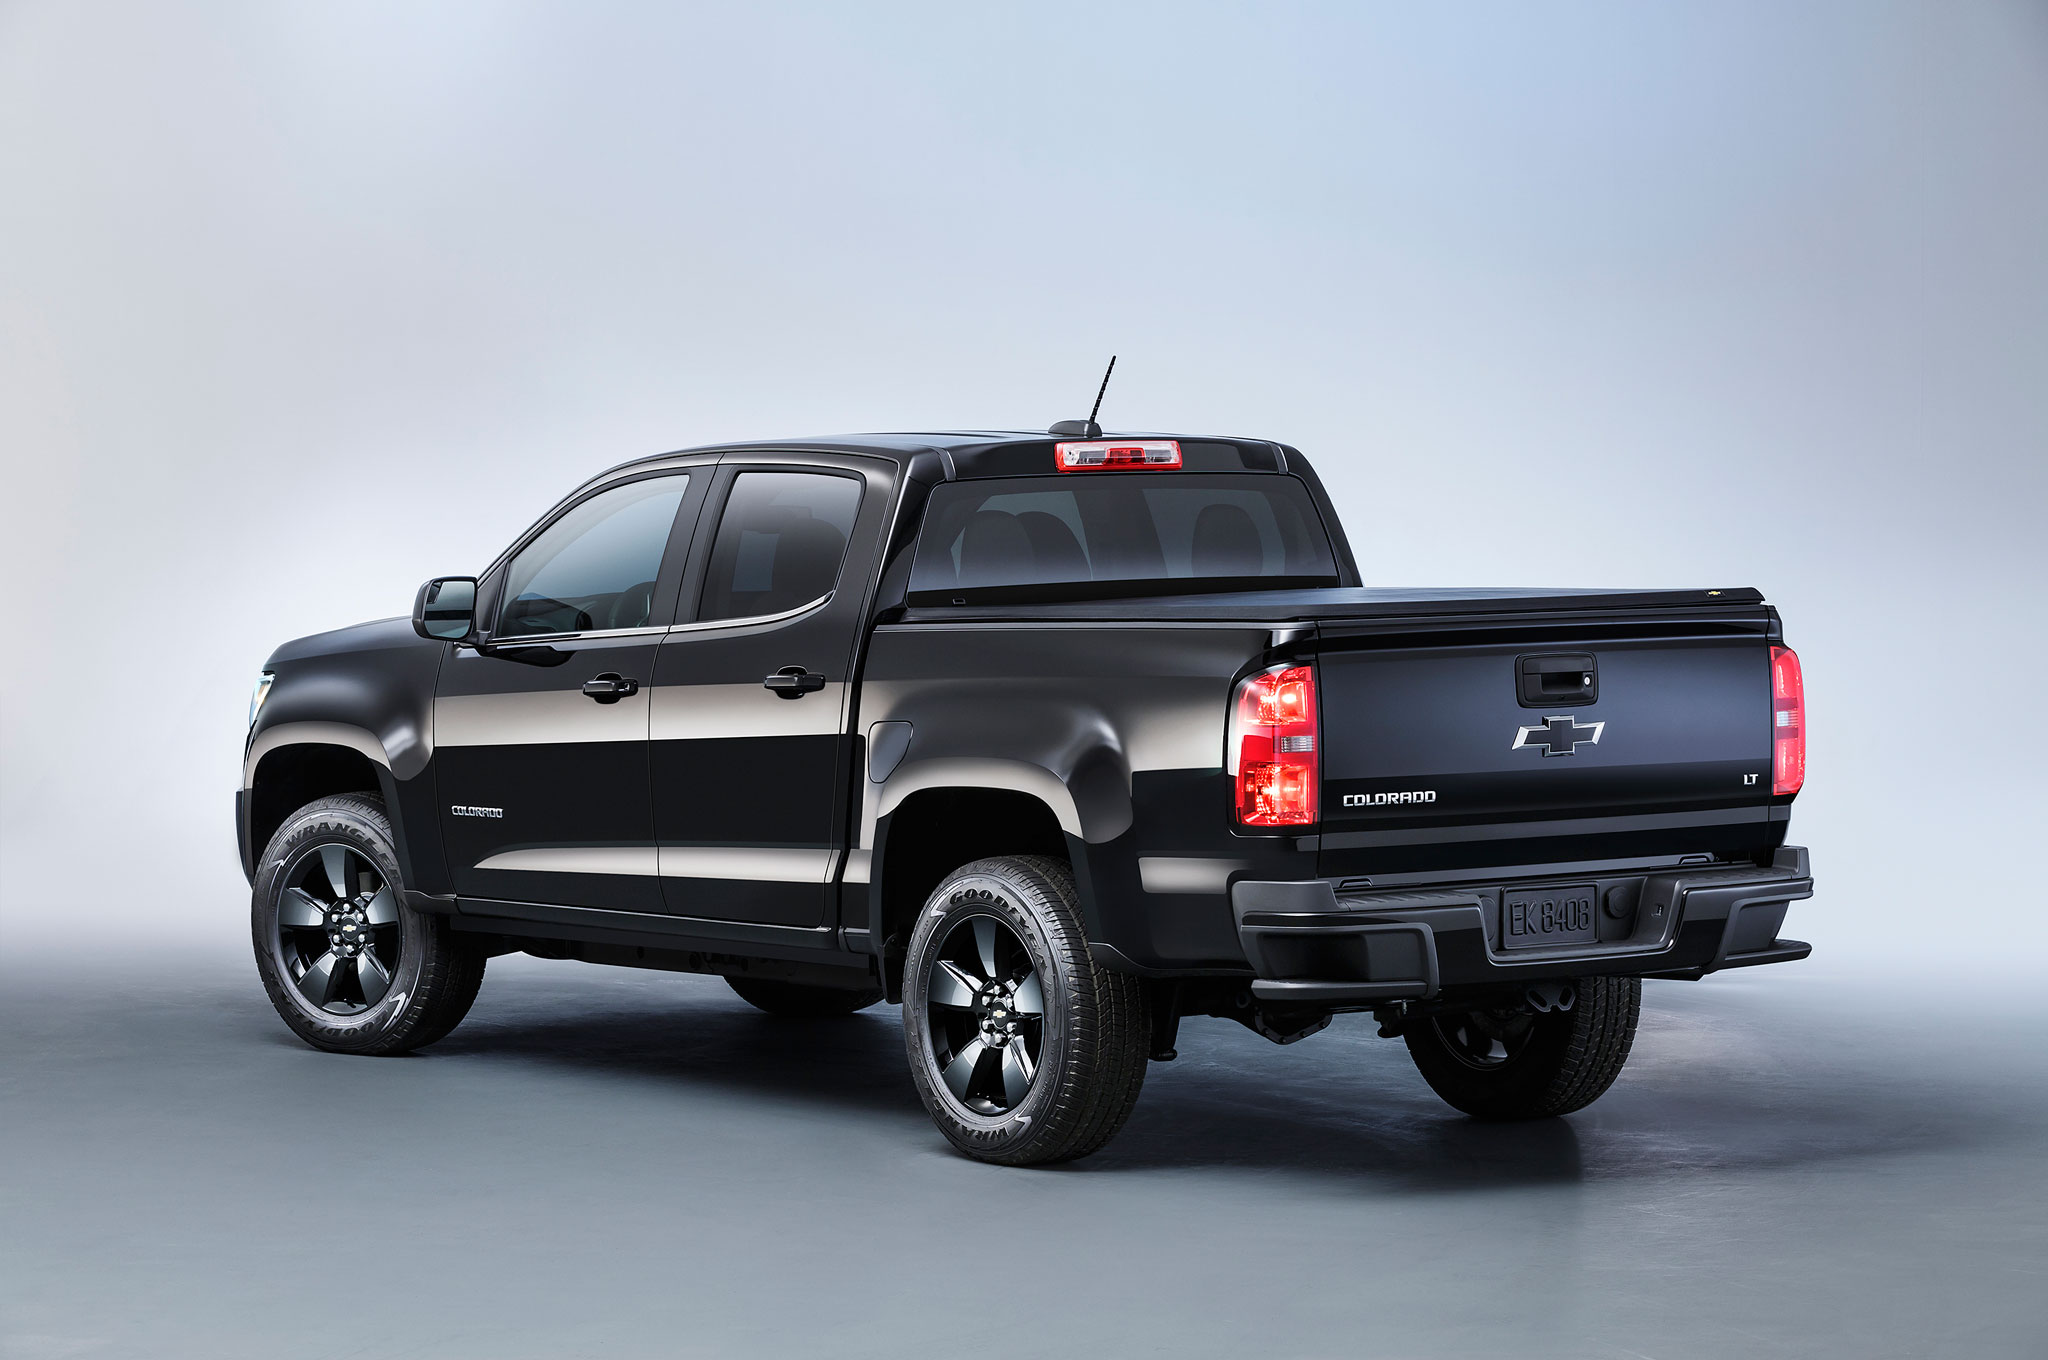 2016 chevrolet colorado midnight edition rear quarter studio 2016 chevrolet colorado diesel review Hitch Wiring Harness Diagram at readyjetset.co